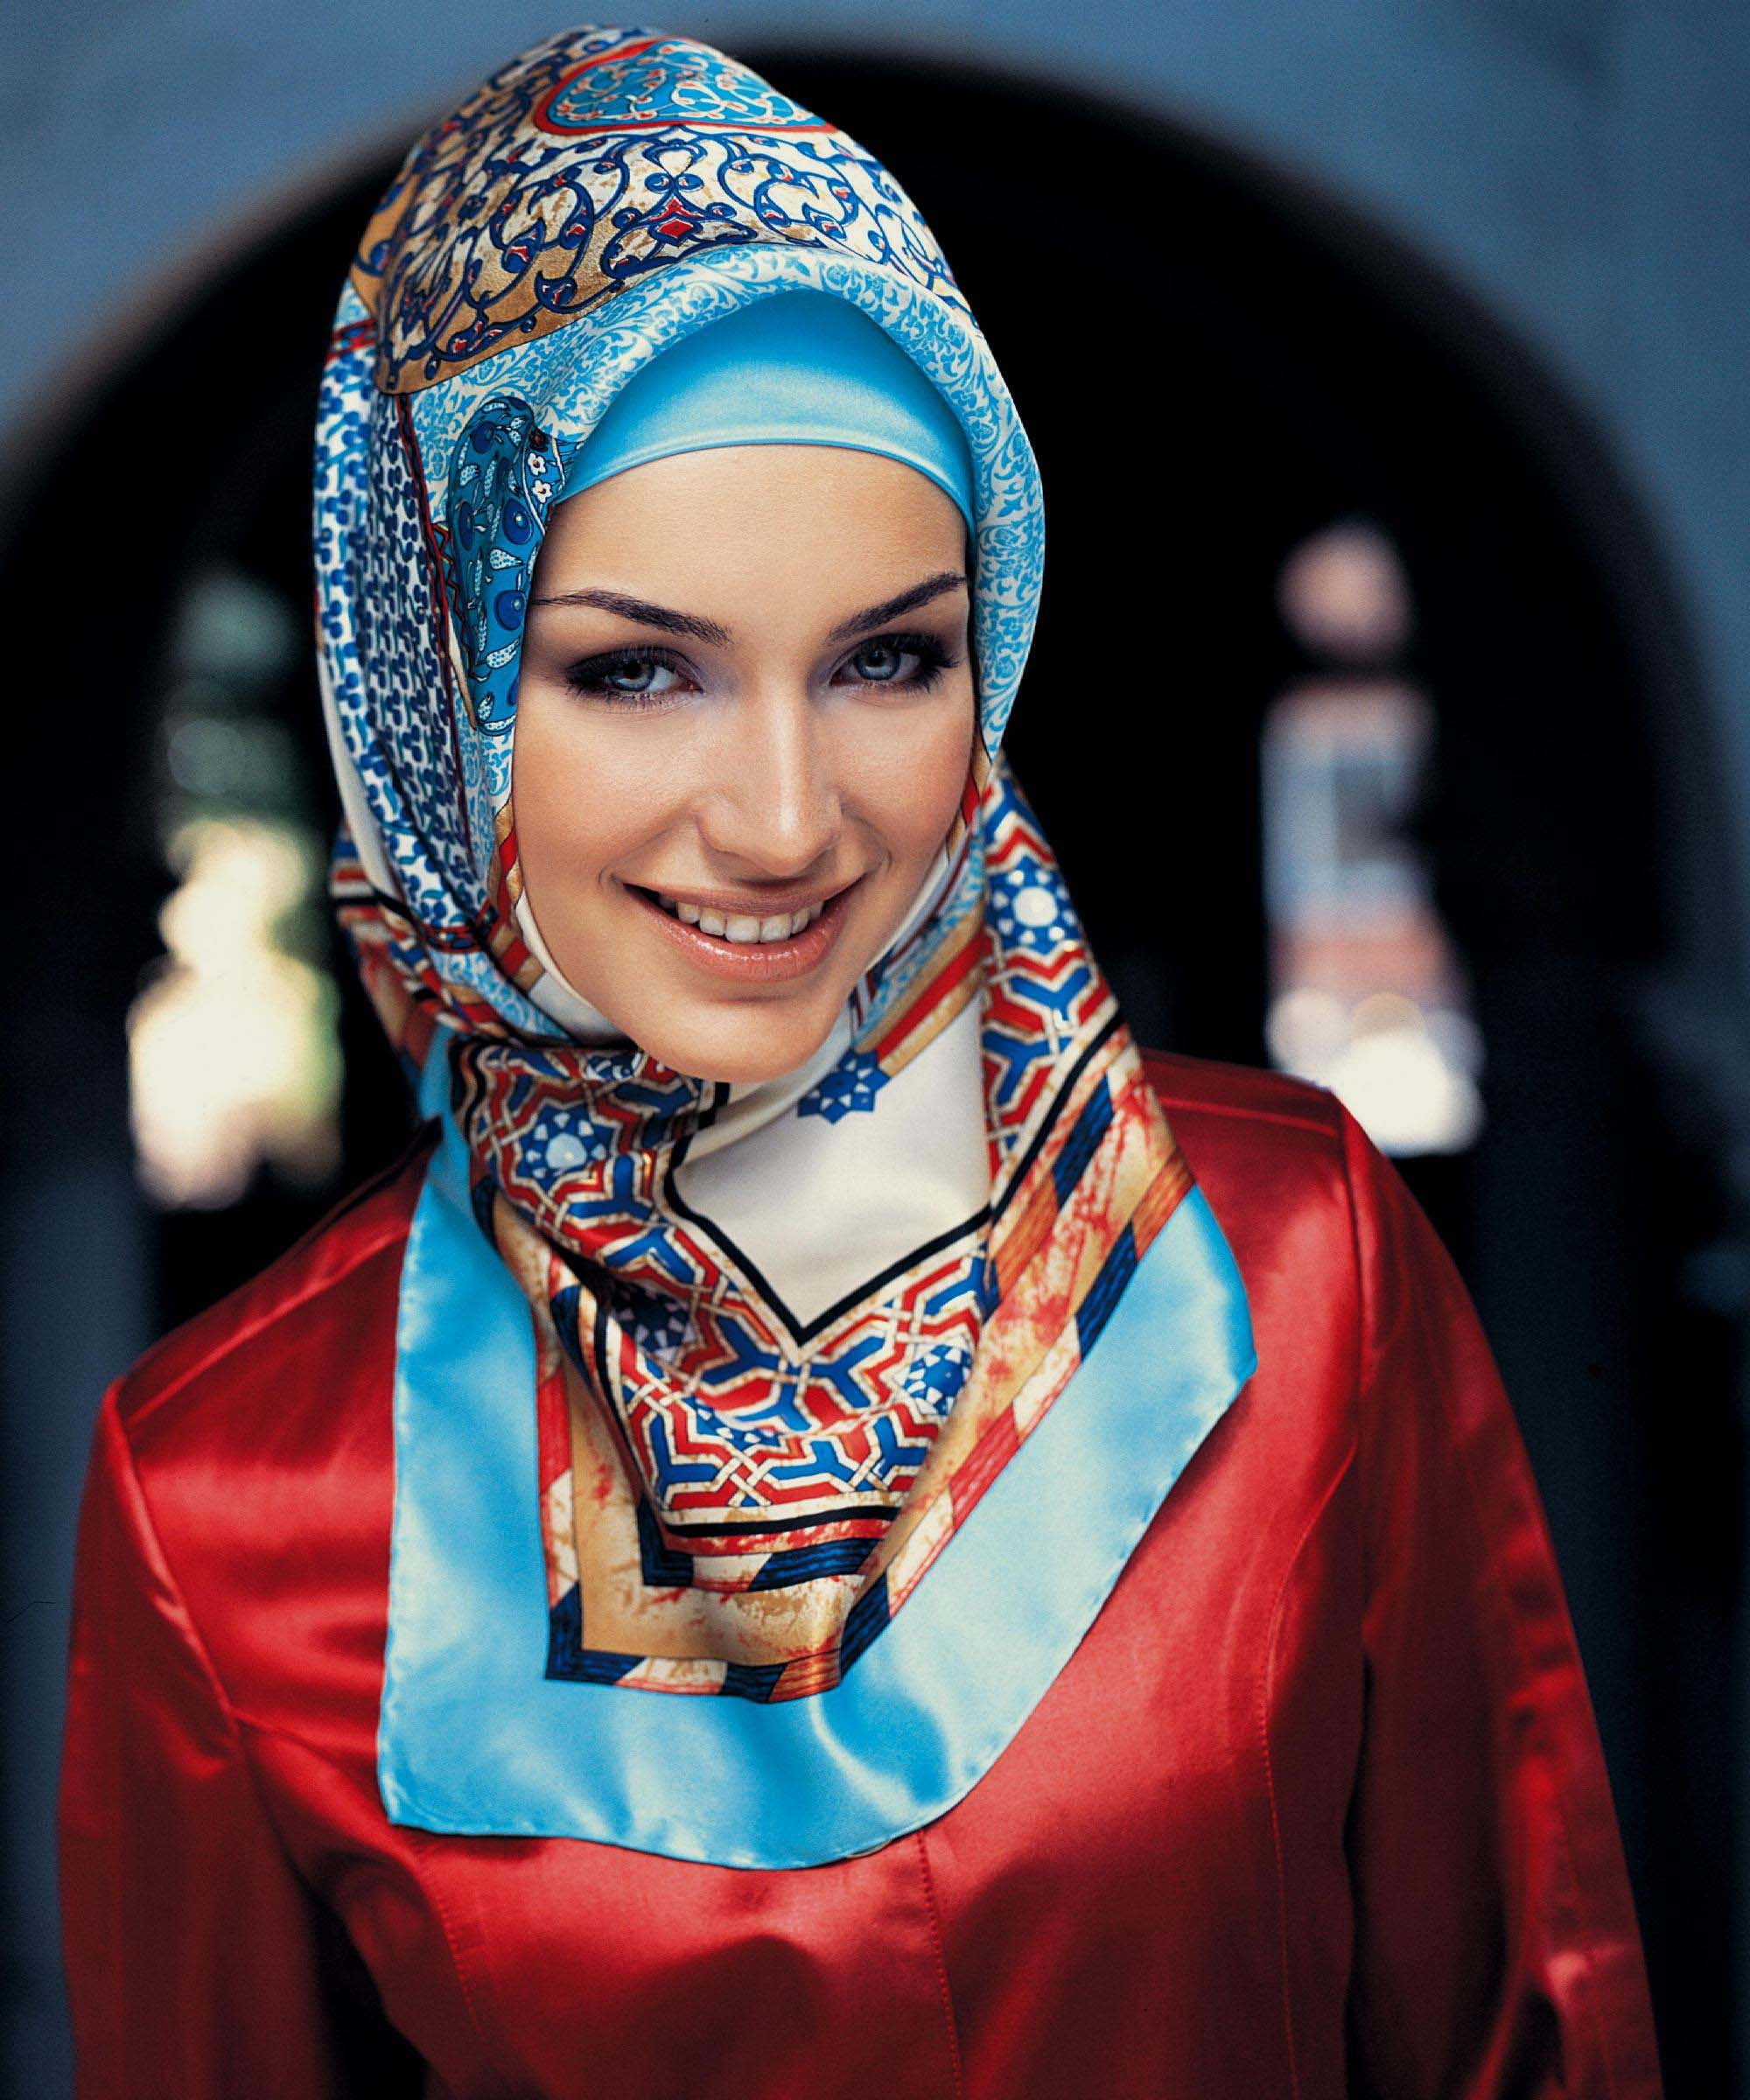 redwood city muslim women dating site On plentyoffishcom you message thousands of other local singles online dating via plentyoffish doesn't cost you a dime paid dating sites can end up costing you hundreds of dollars a year without a single date if you are looking for free online dating in redwood city than sign up right now over.